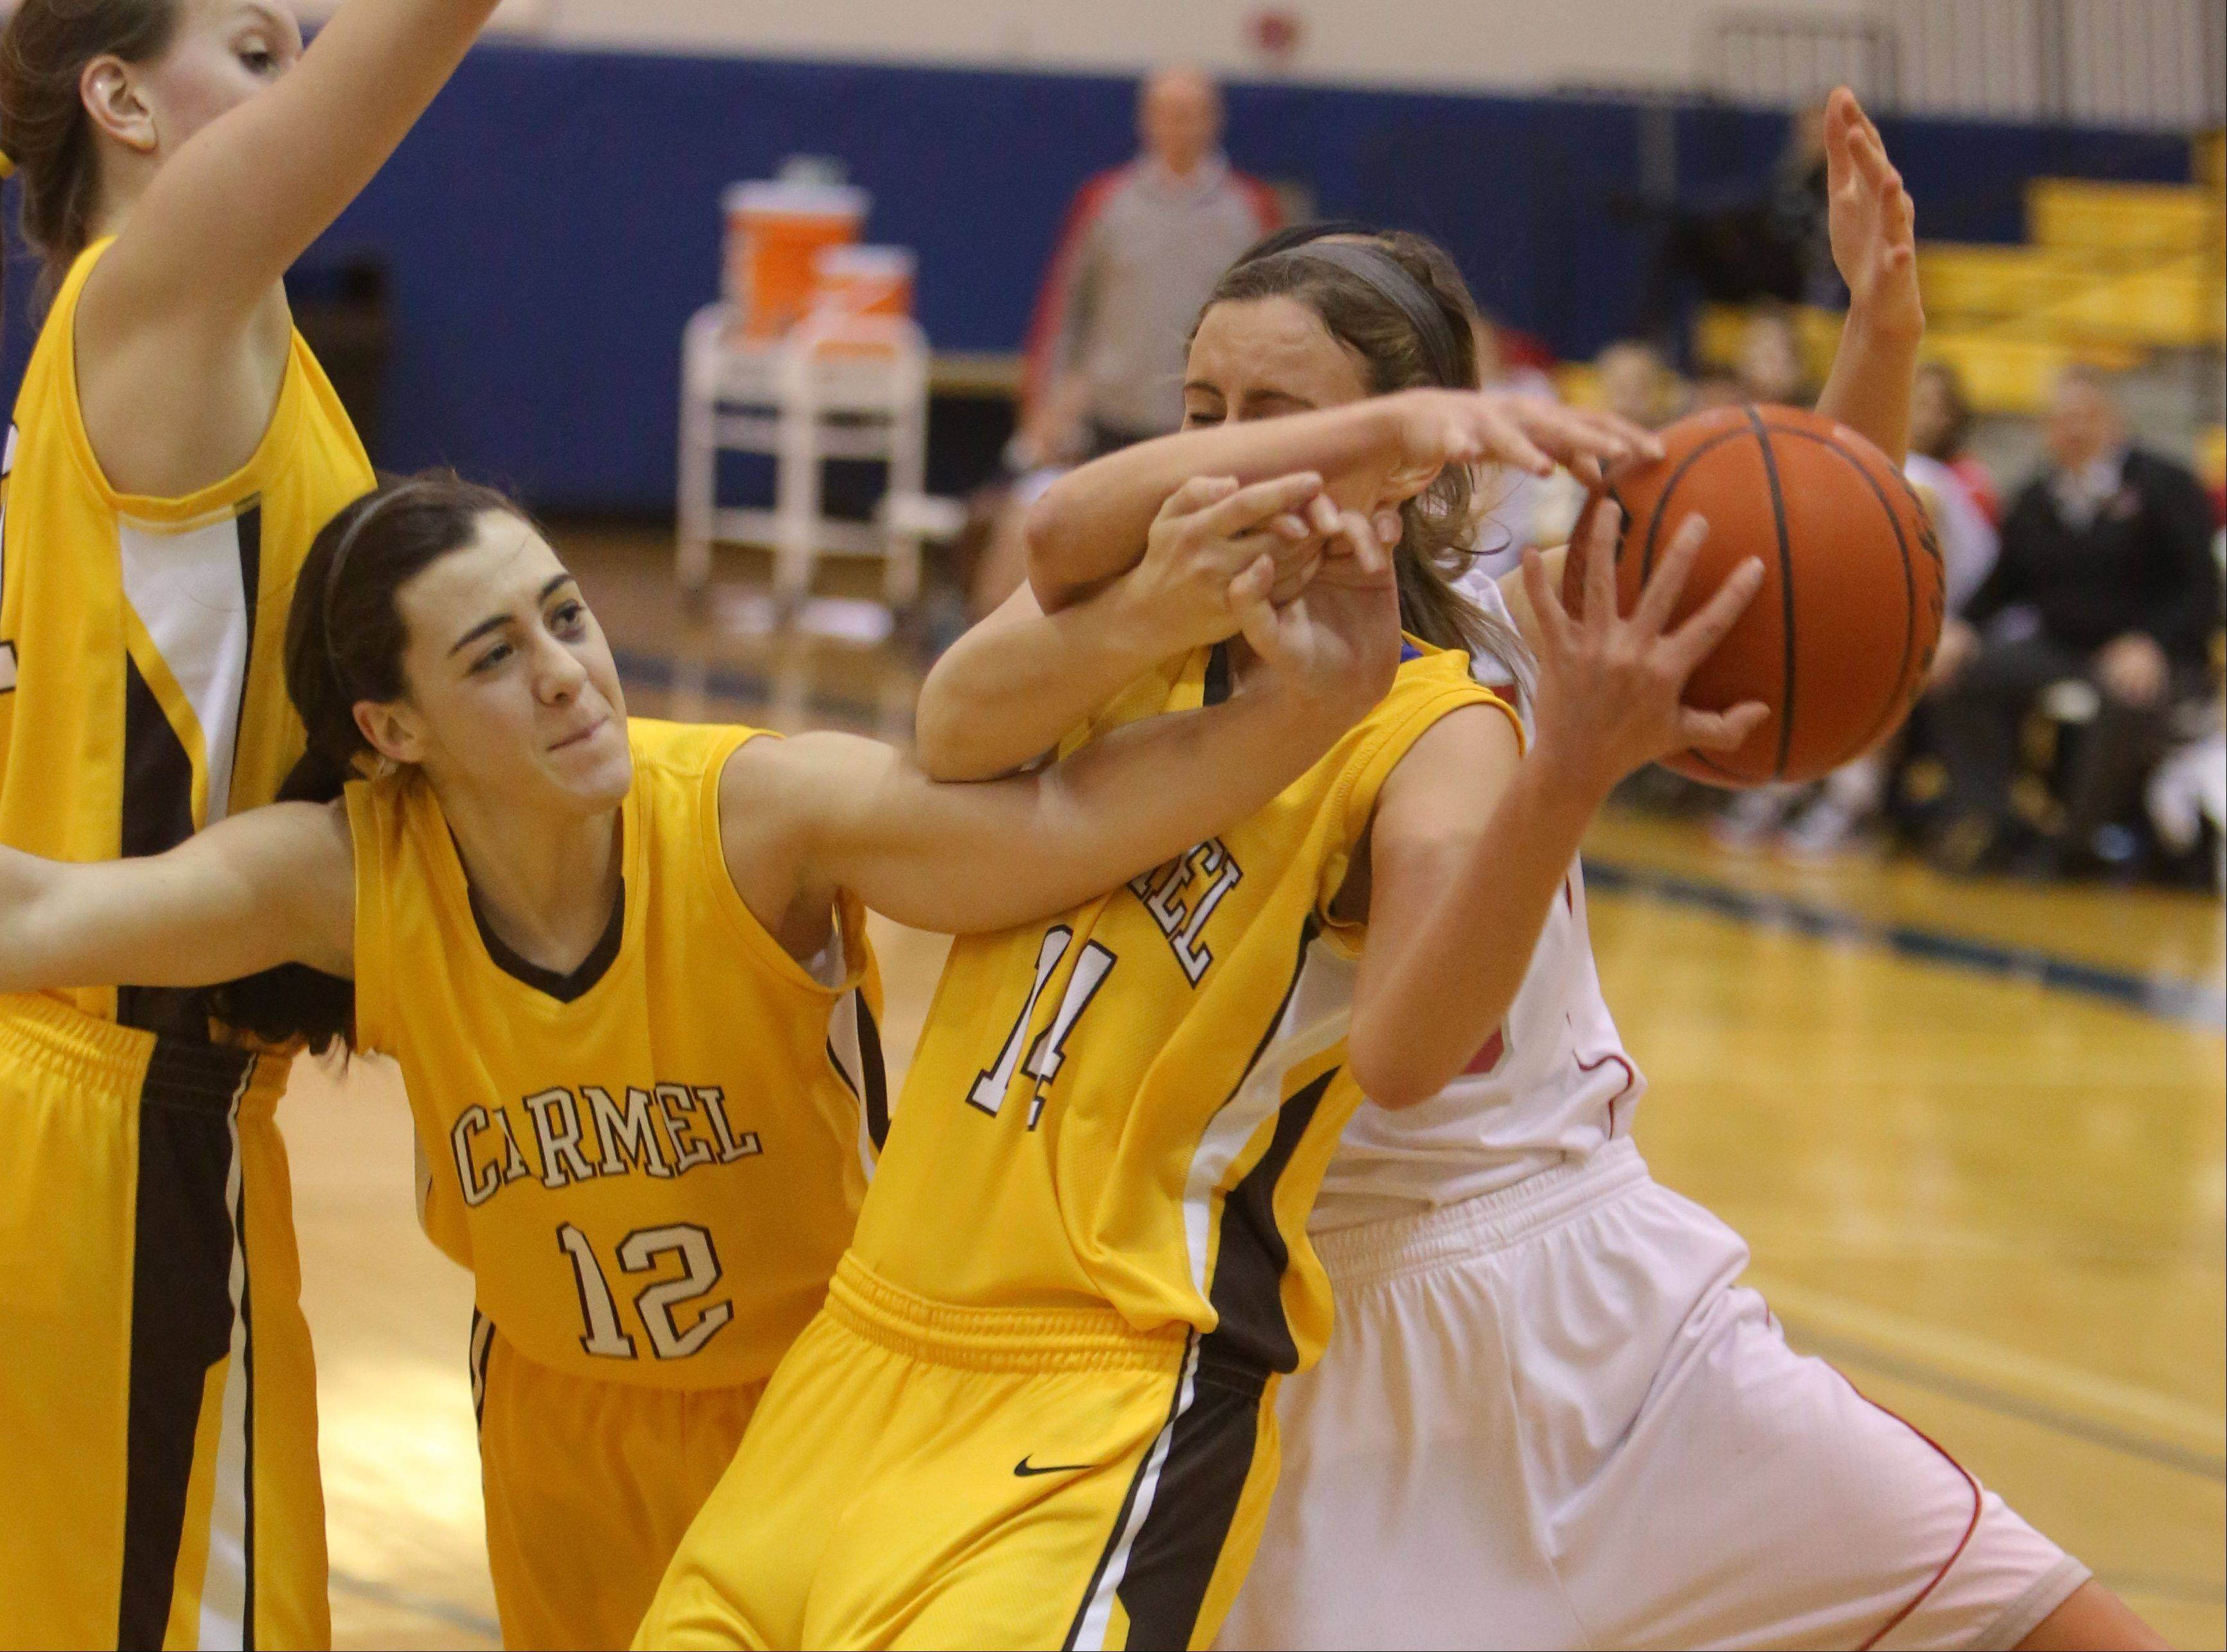 Images from the Carmel vs. Palatine girls basketball game on Friday, Dec. 27.